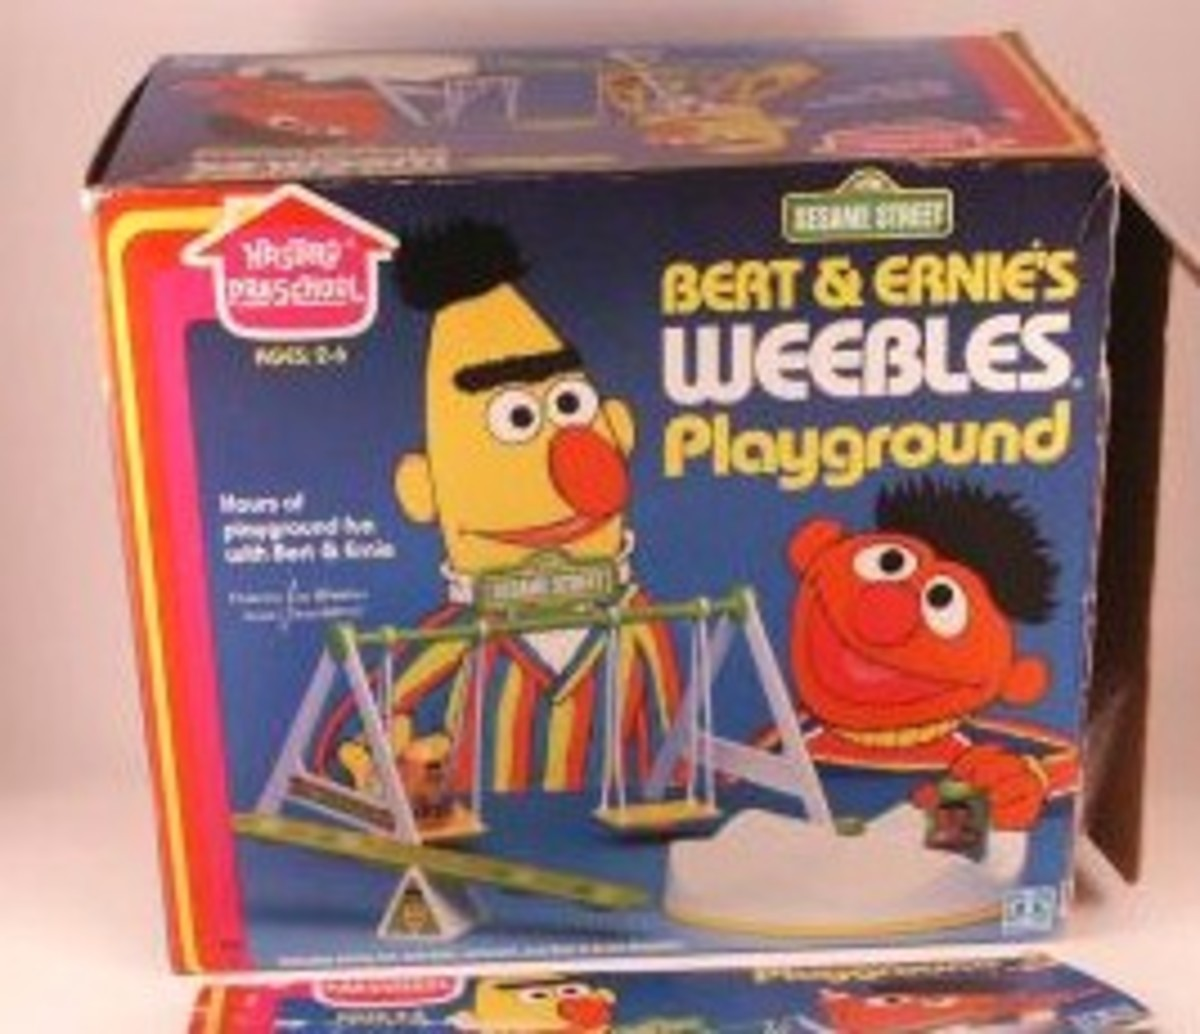 Weebles Play Ground